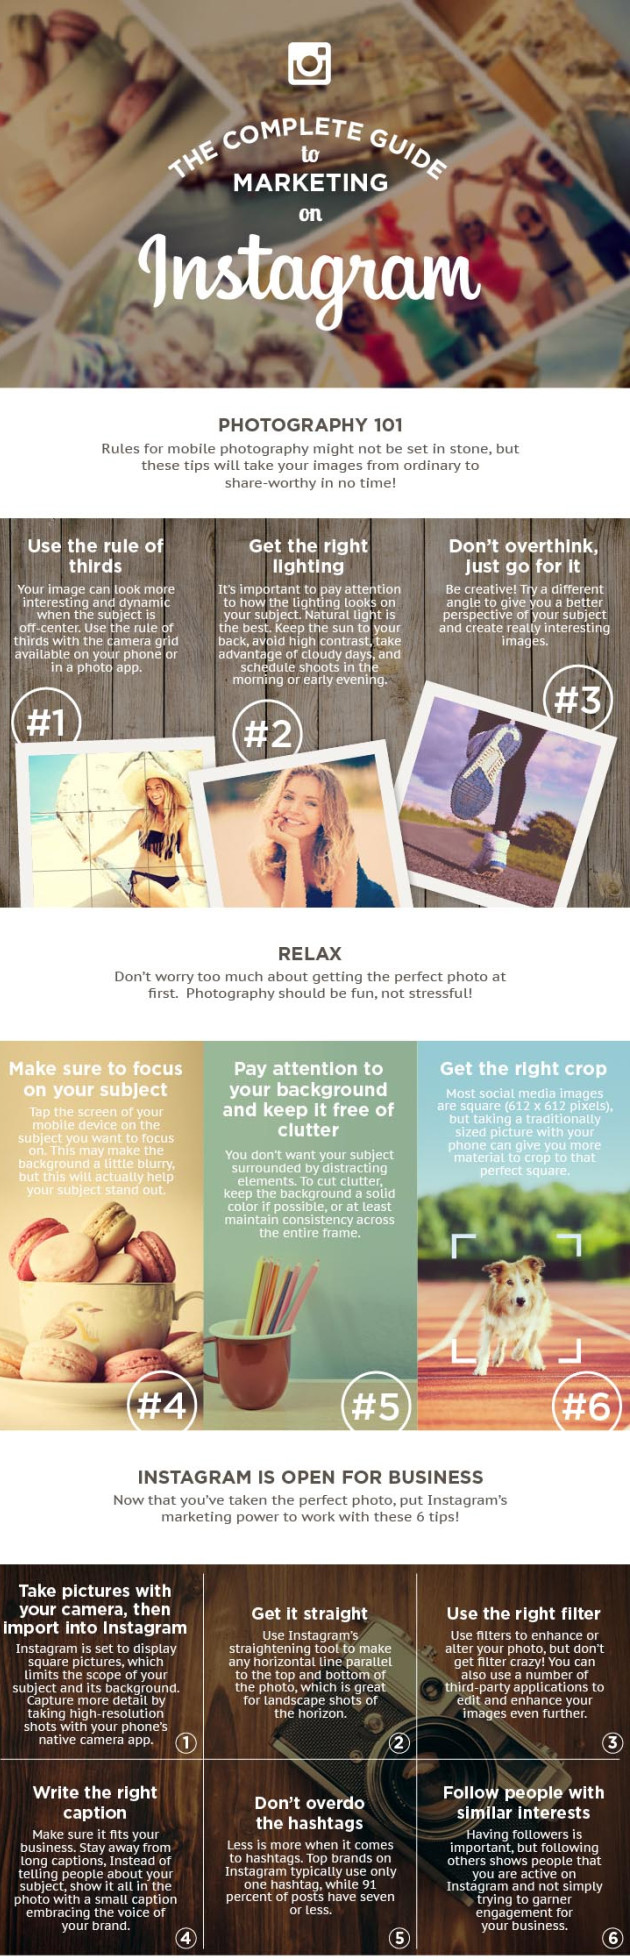 the-complete-guide-to-marketing-on-instagram-12-tips-for-success1